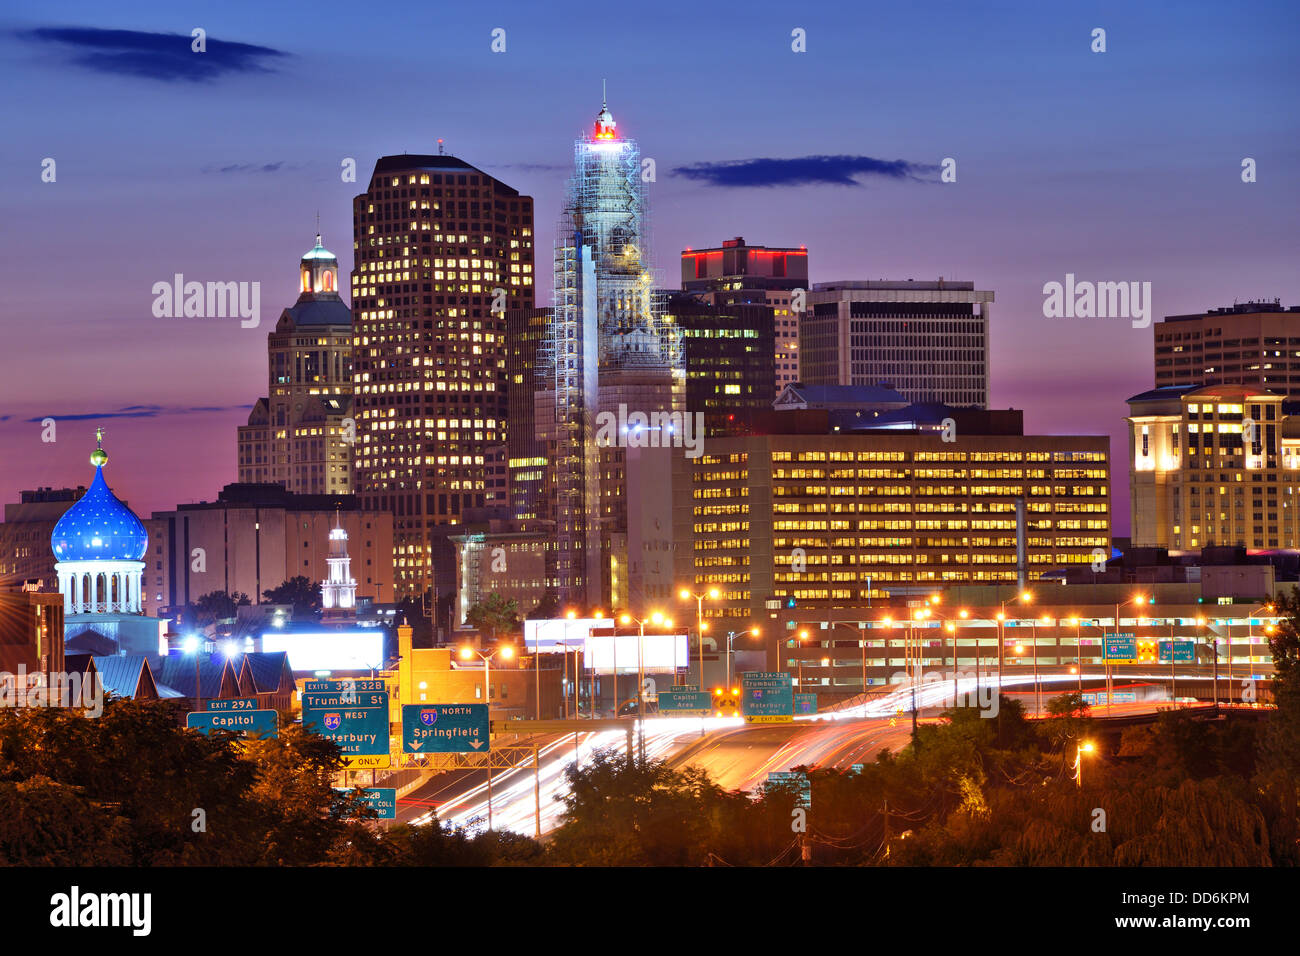 Skyline of downtown Hartford, Connecticut from above Charter Oak Landing. - Stock Image